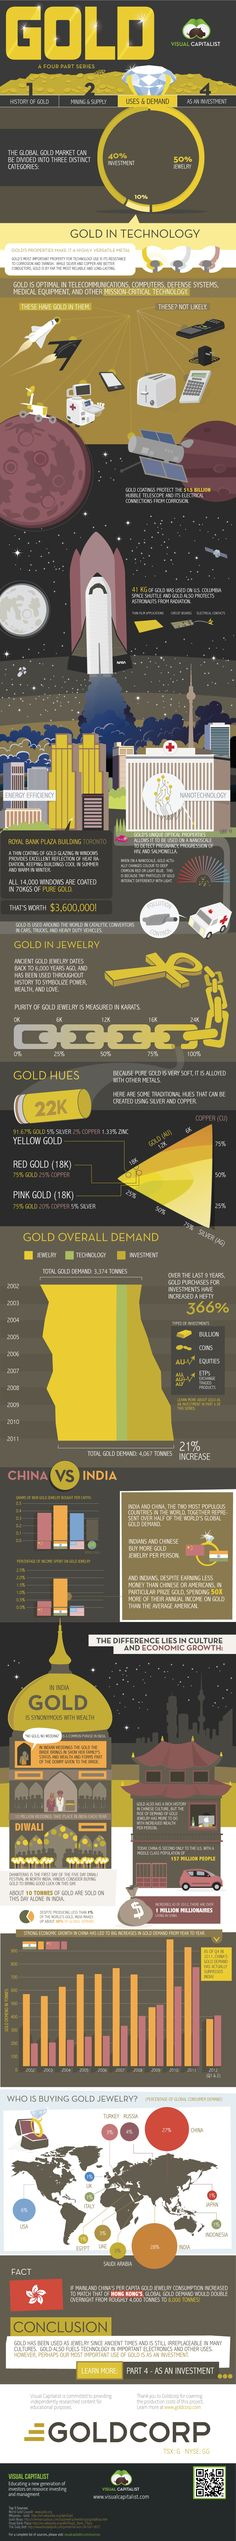 Gold Series Infographic (Part 3): Uses and Demand